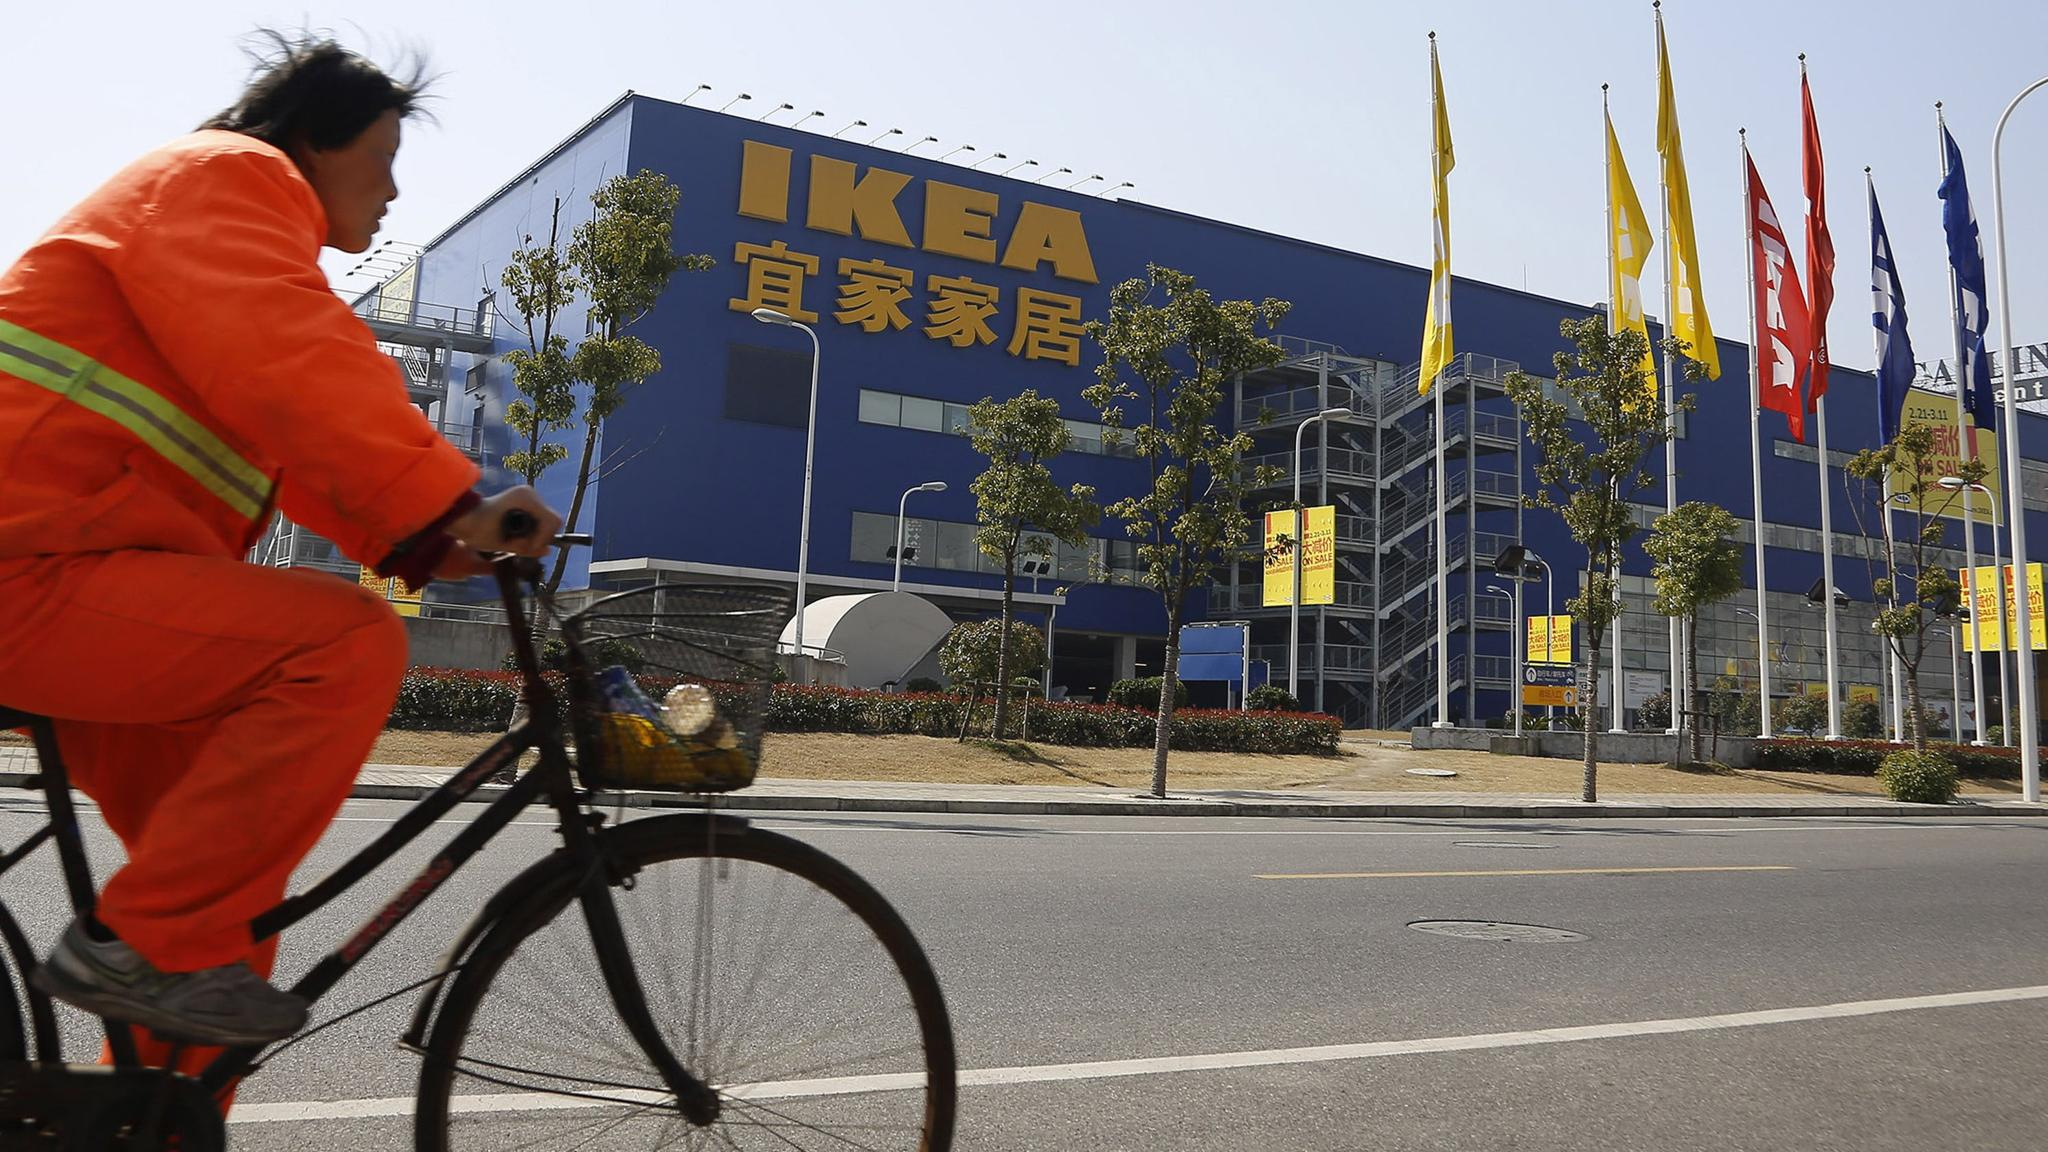 Ikea Bank Bad Ikea Keeps Target To Double Sales By 2020 Despite Slow Start